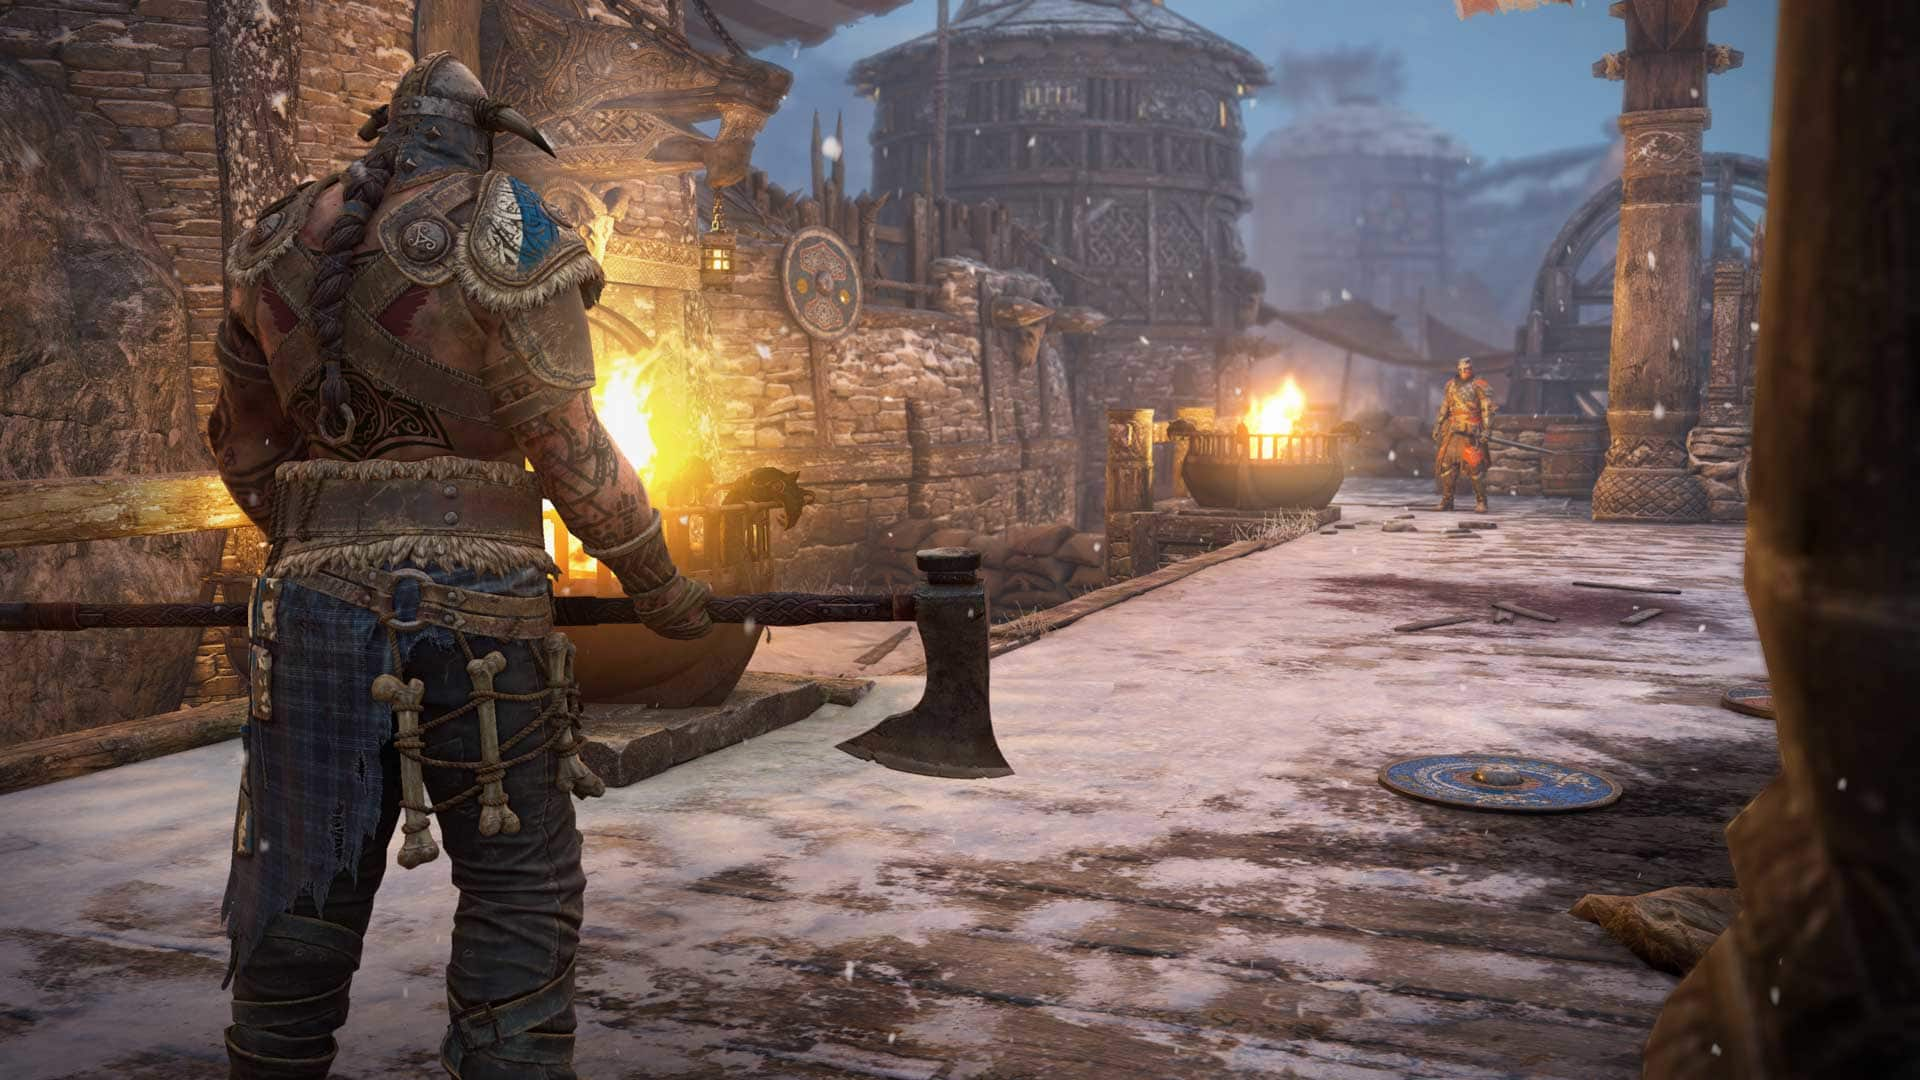 How to Play For Honor - Game Modes